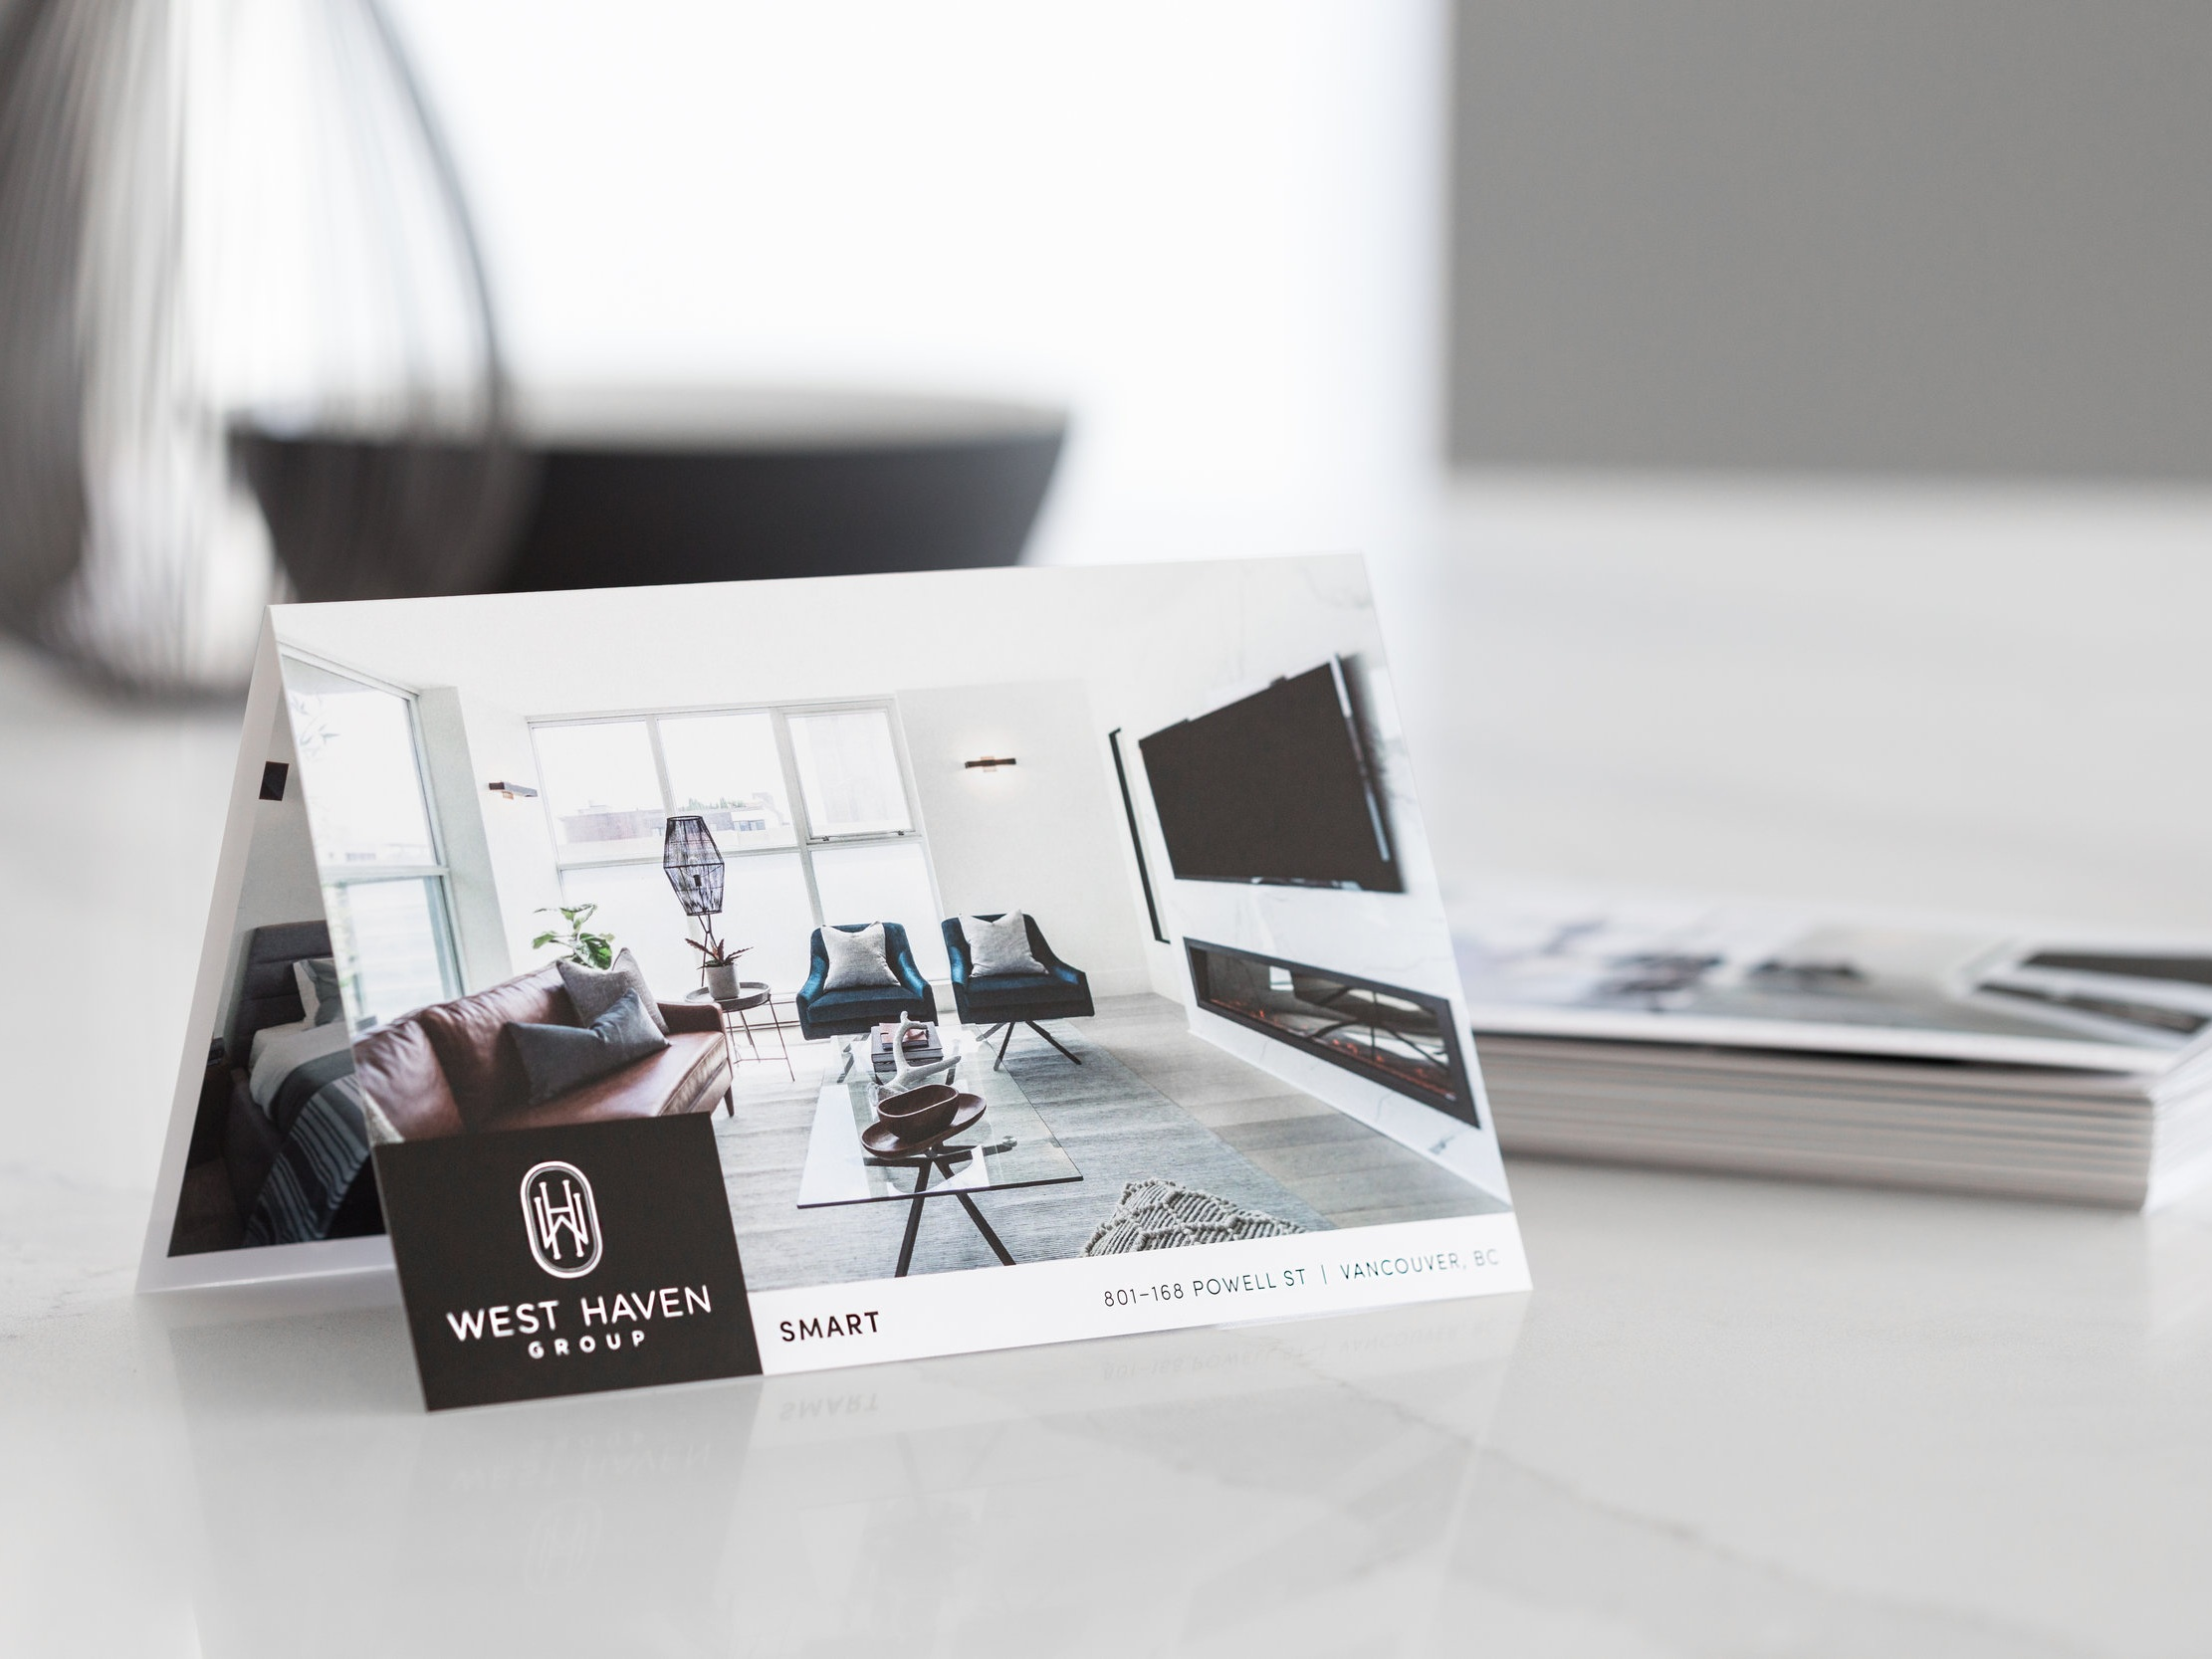 AGENCY CALIBRE MATERIALS - Prospective buyers' experiences from online to and in-person showing should be elevated and professional. This influences perception of value in the seller's favour.